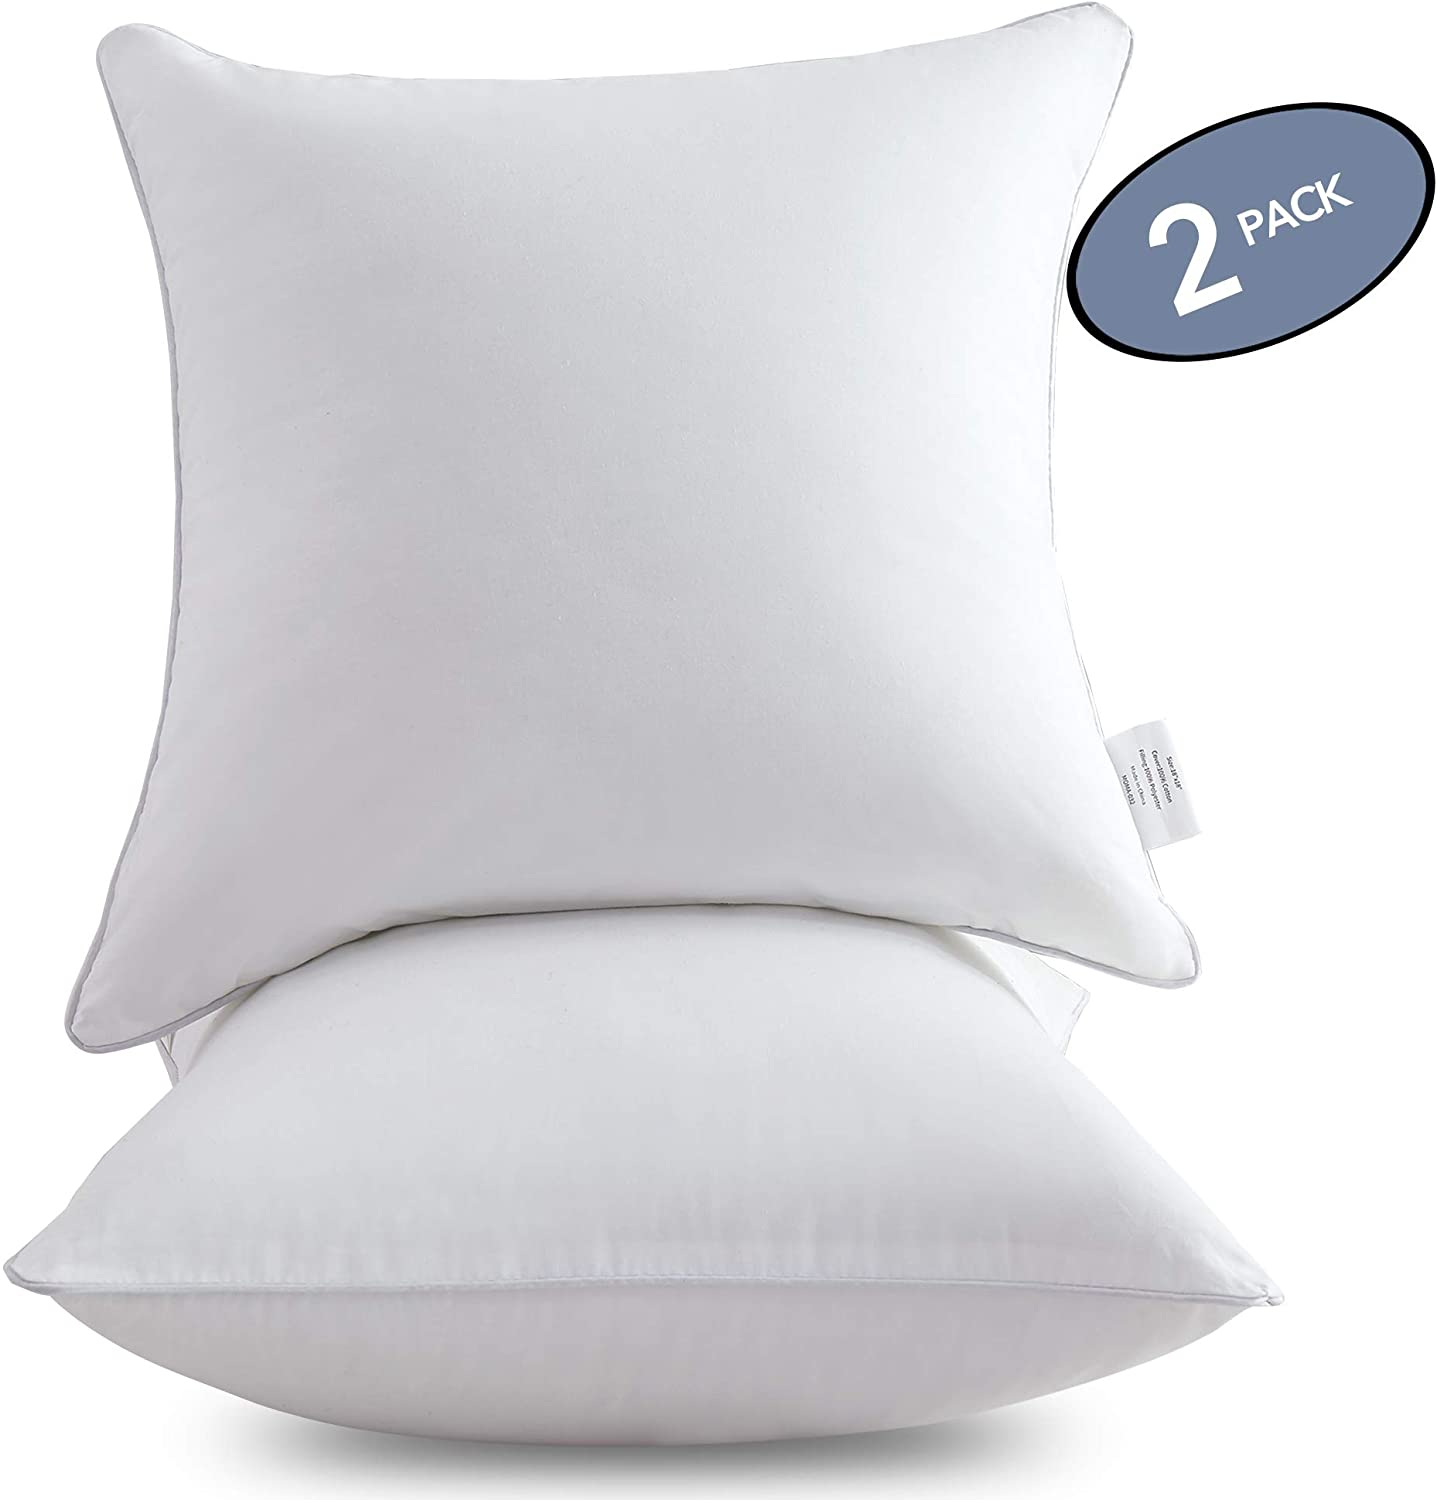 Leeden 20 x 20 Pillow Inserts (Set of 2) - Throw Pillow Inserts with 100% Cotton Cover - 18 Inch Square Interior Sofa Pillow Inserts - Decorative Pillow Insert Pair - White Couch Pillow